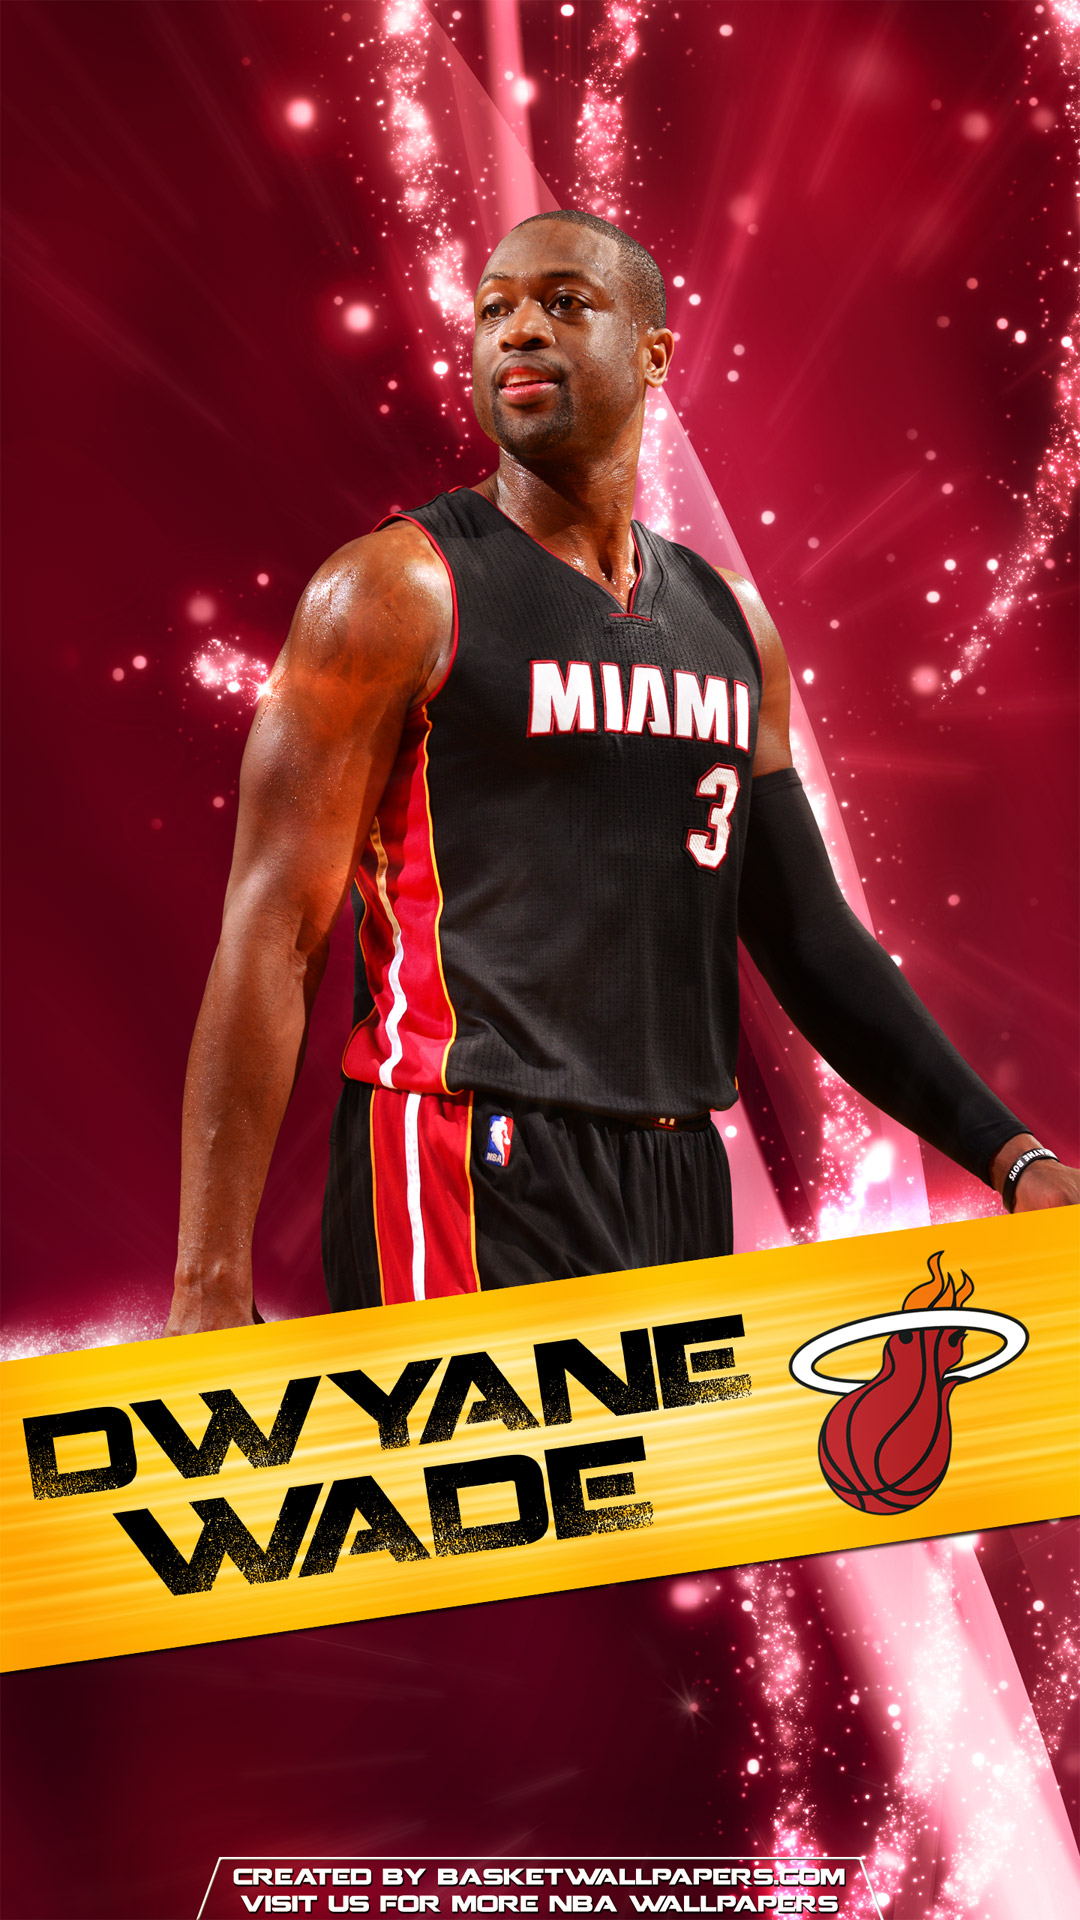 download Dwyane Wade Miami Heat 2016 Mobile Wallpaper 1080x1920